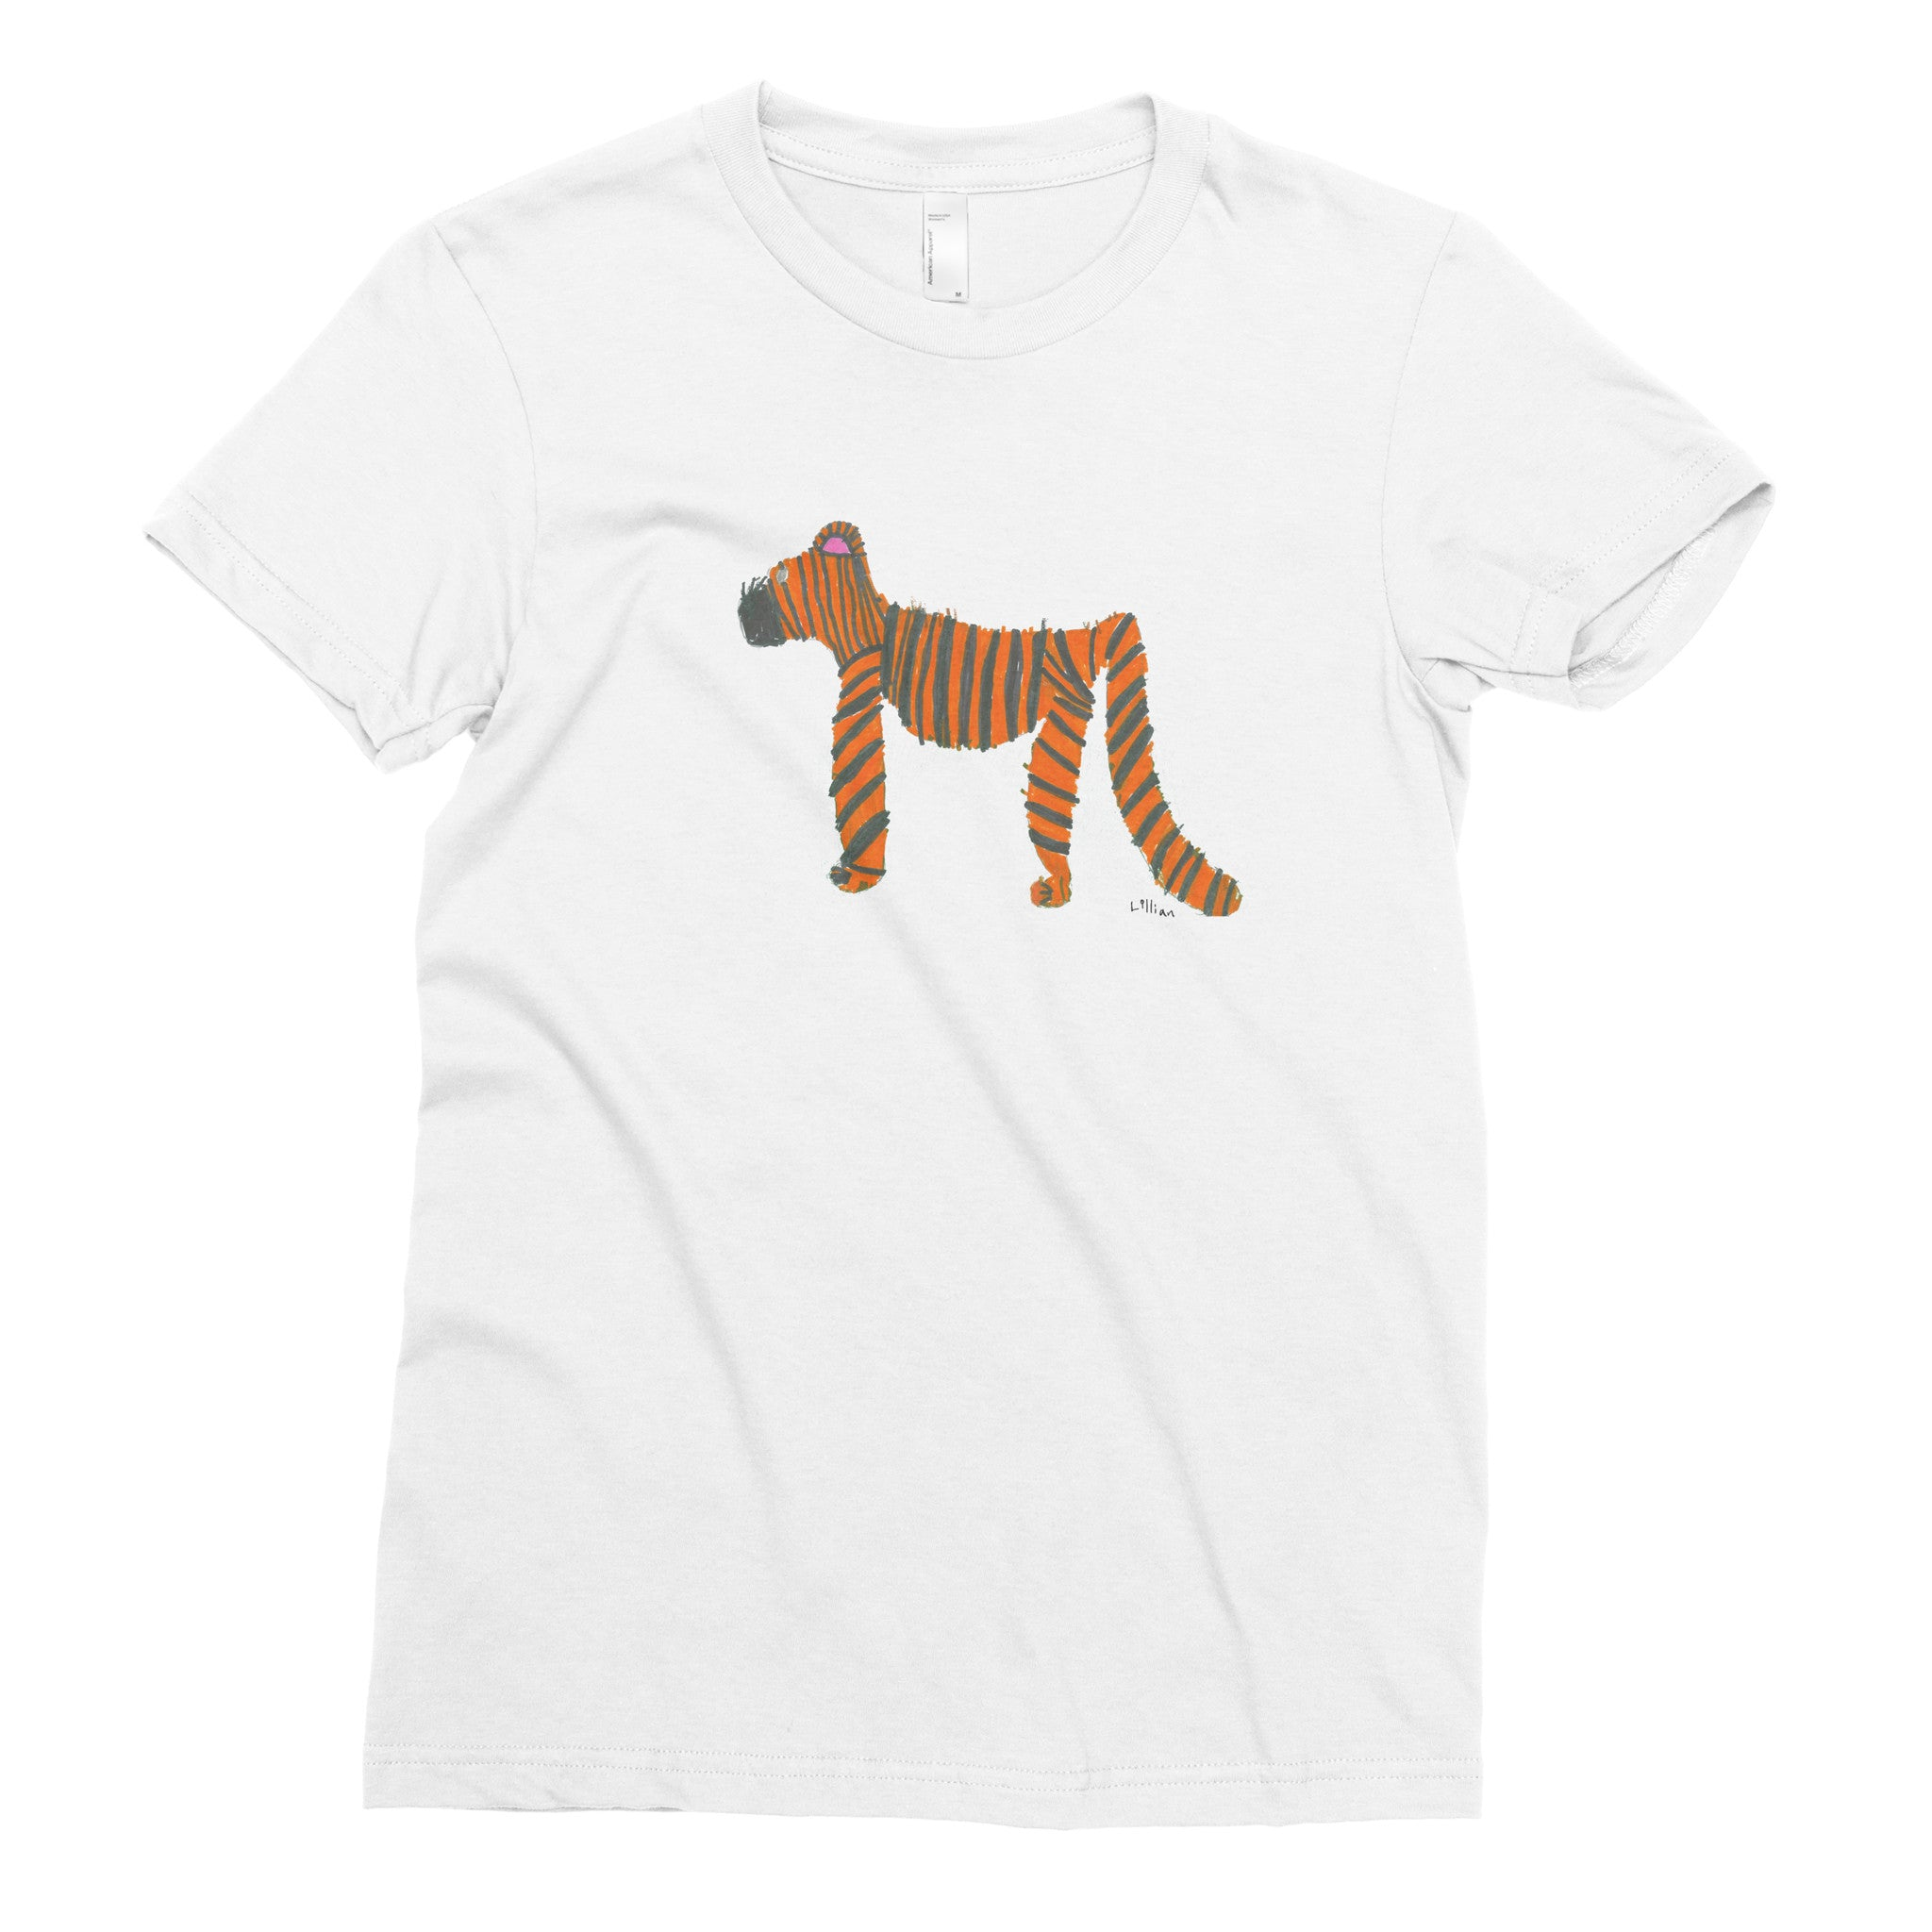 Tiger in a Rainforest by Lillian, 1st grade - Adult T-shirt - Rightside Shirts - 1